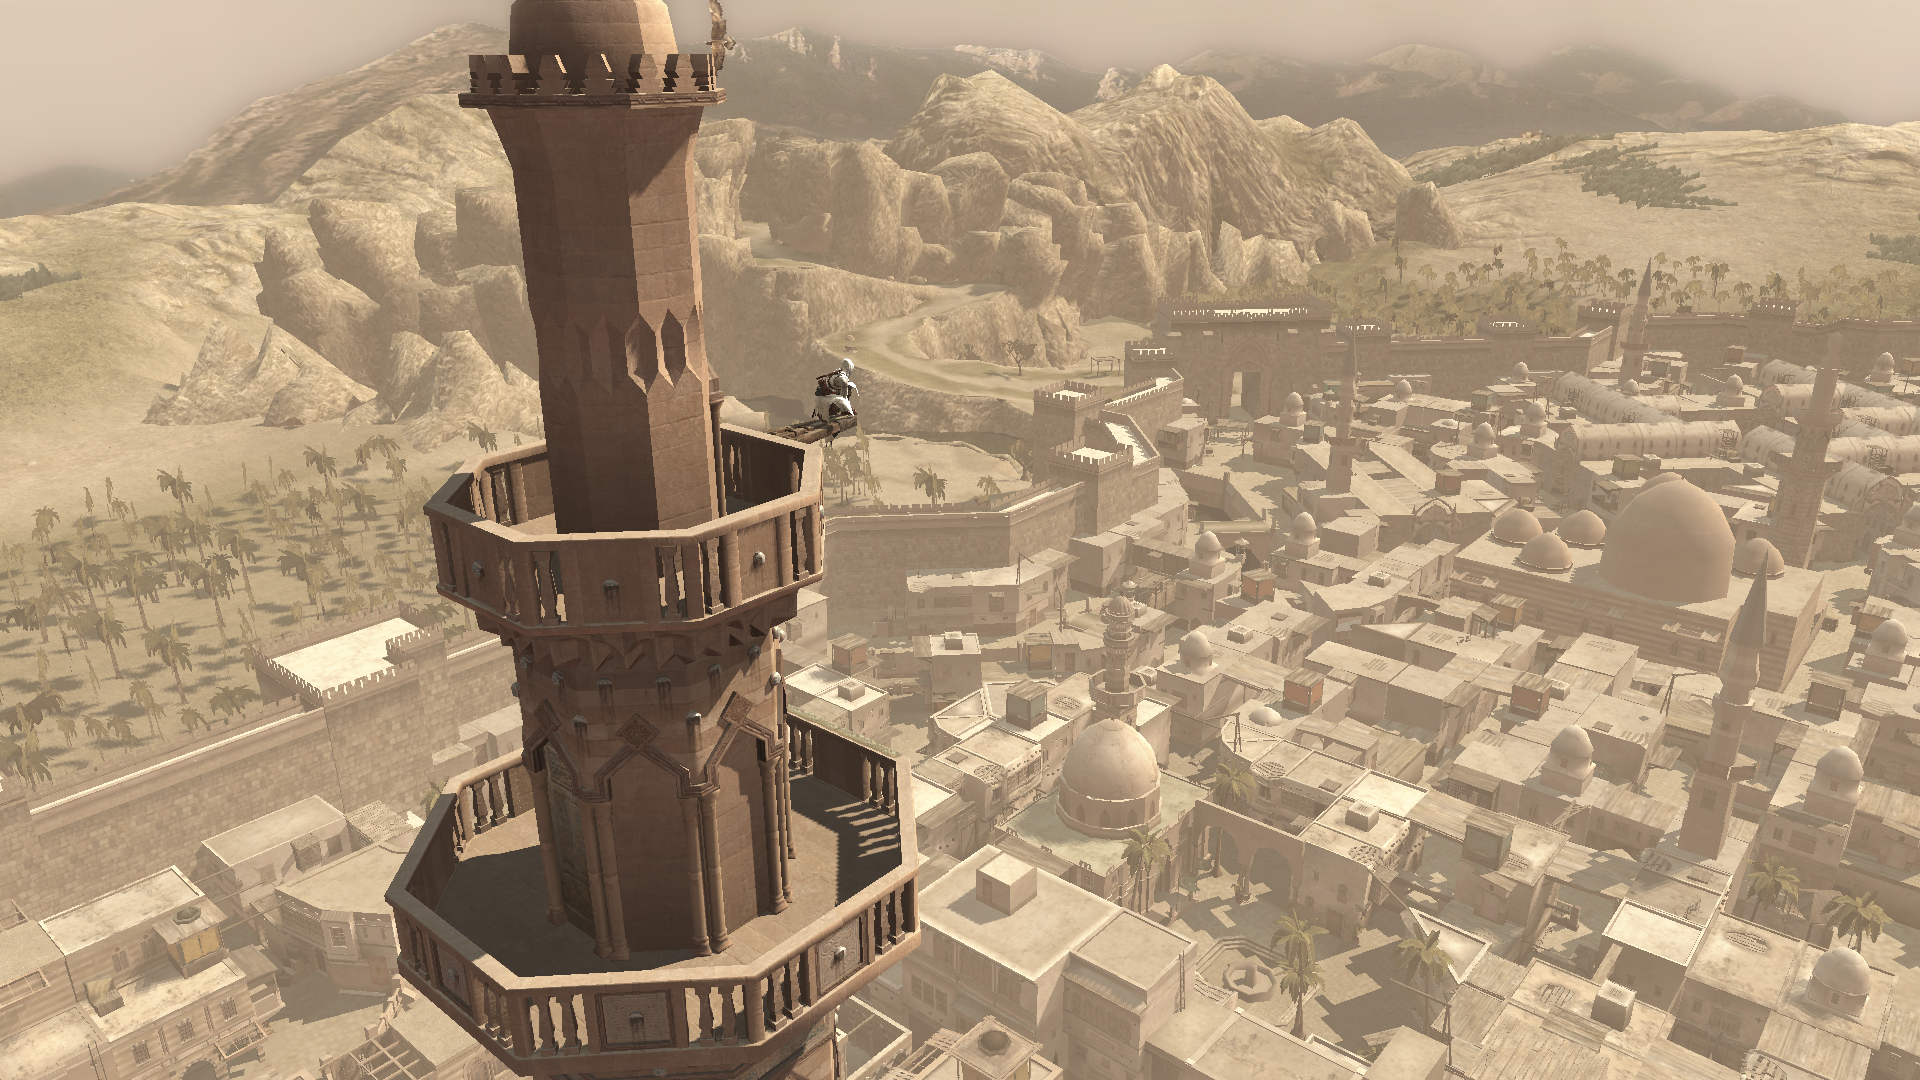 AC1_Altair_Viewpoint_Damascus Assassin's Creed and I: Or How I learned to stop worrying and love the Creed